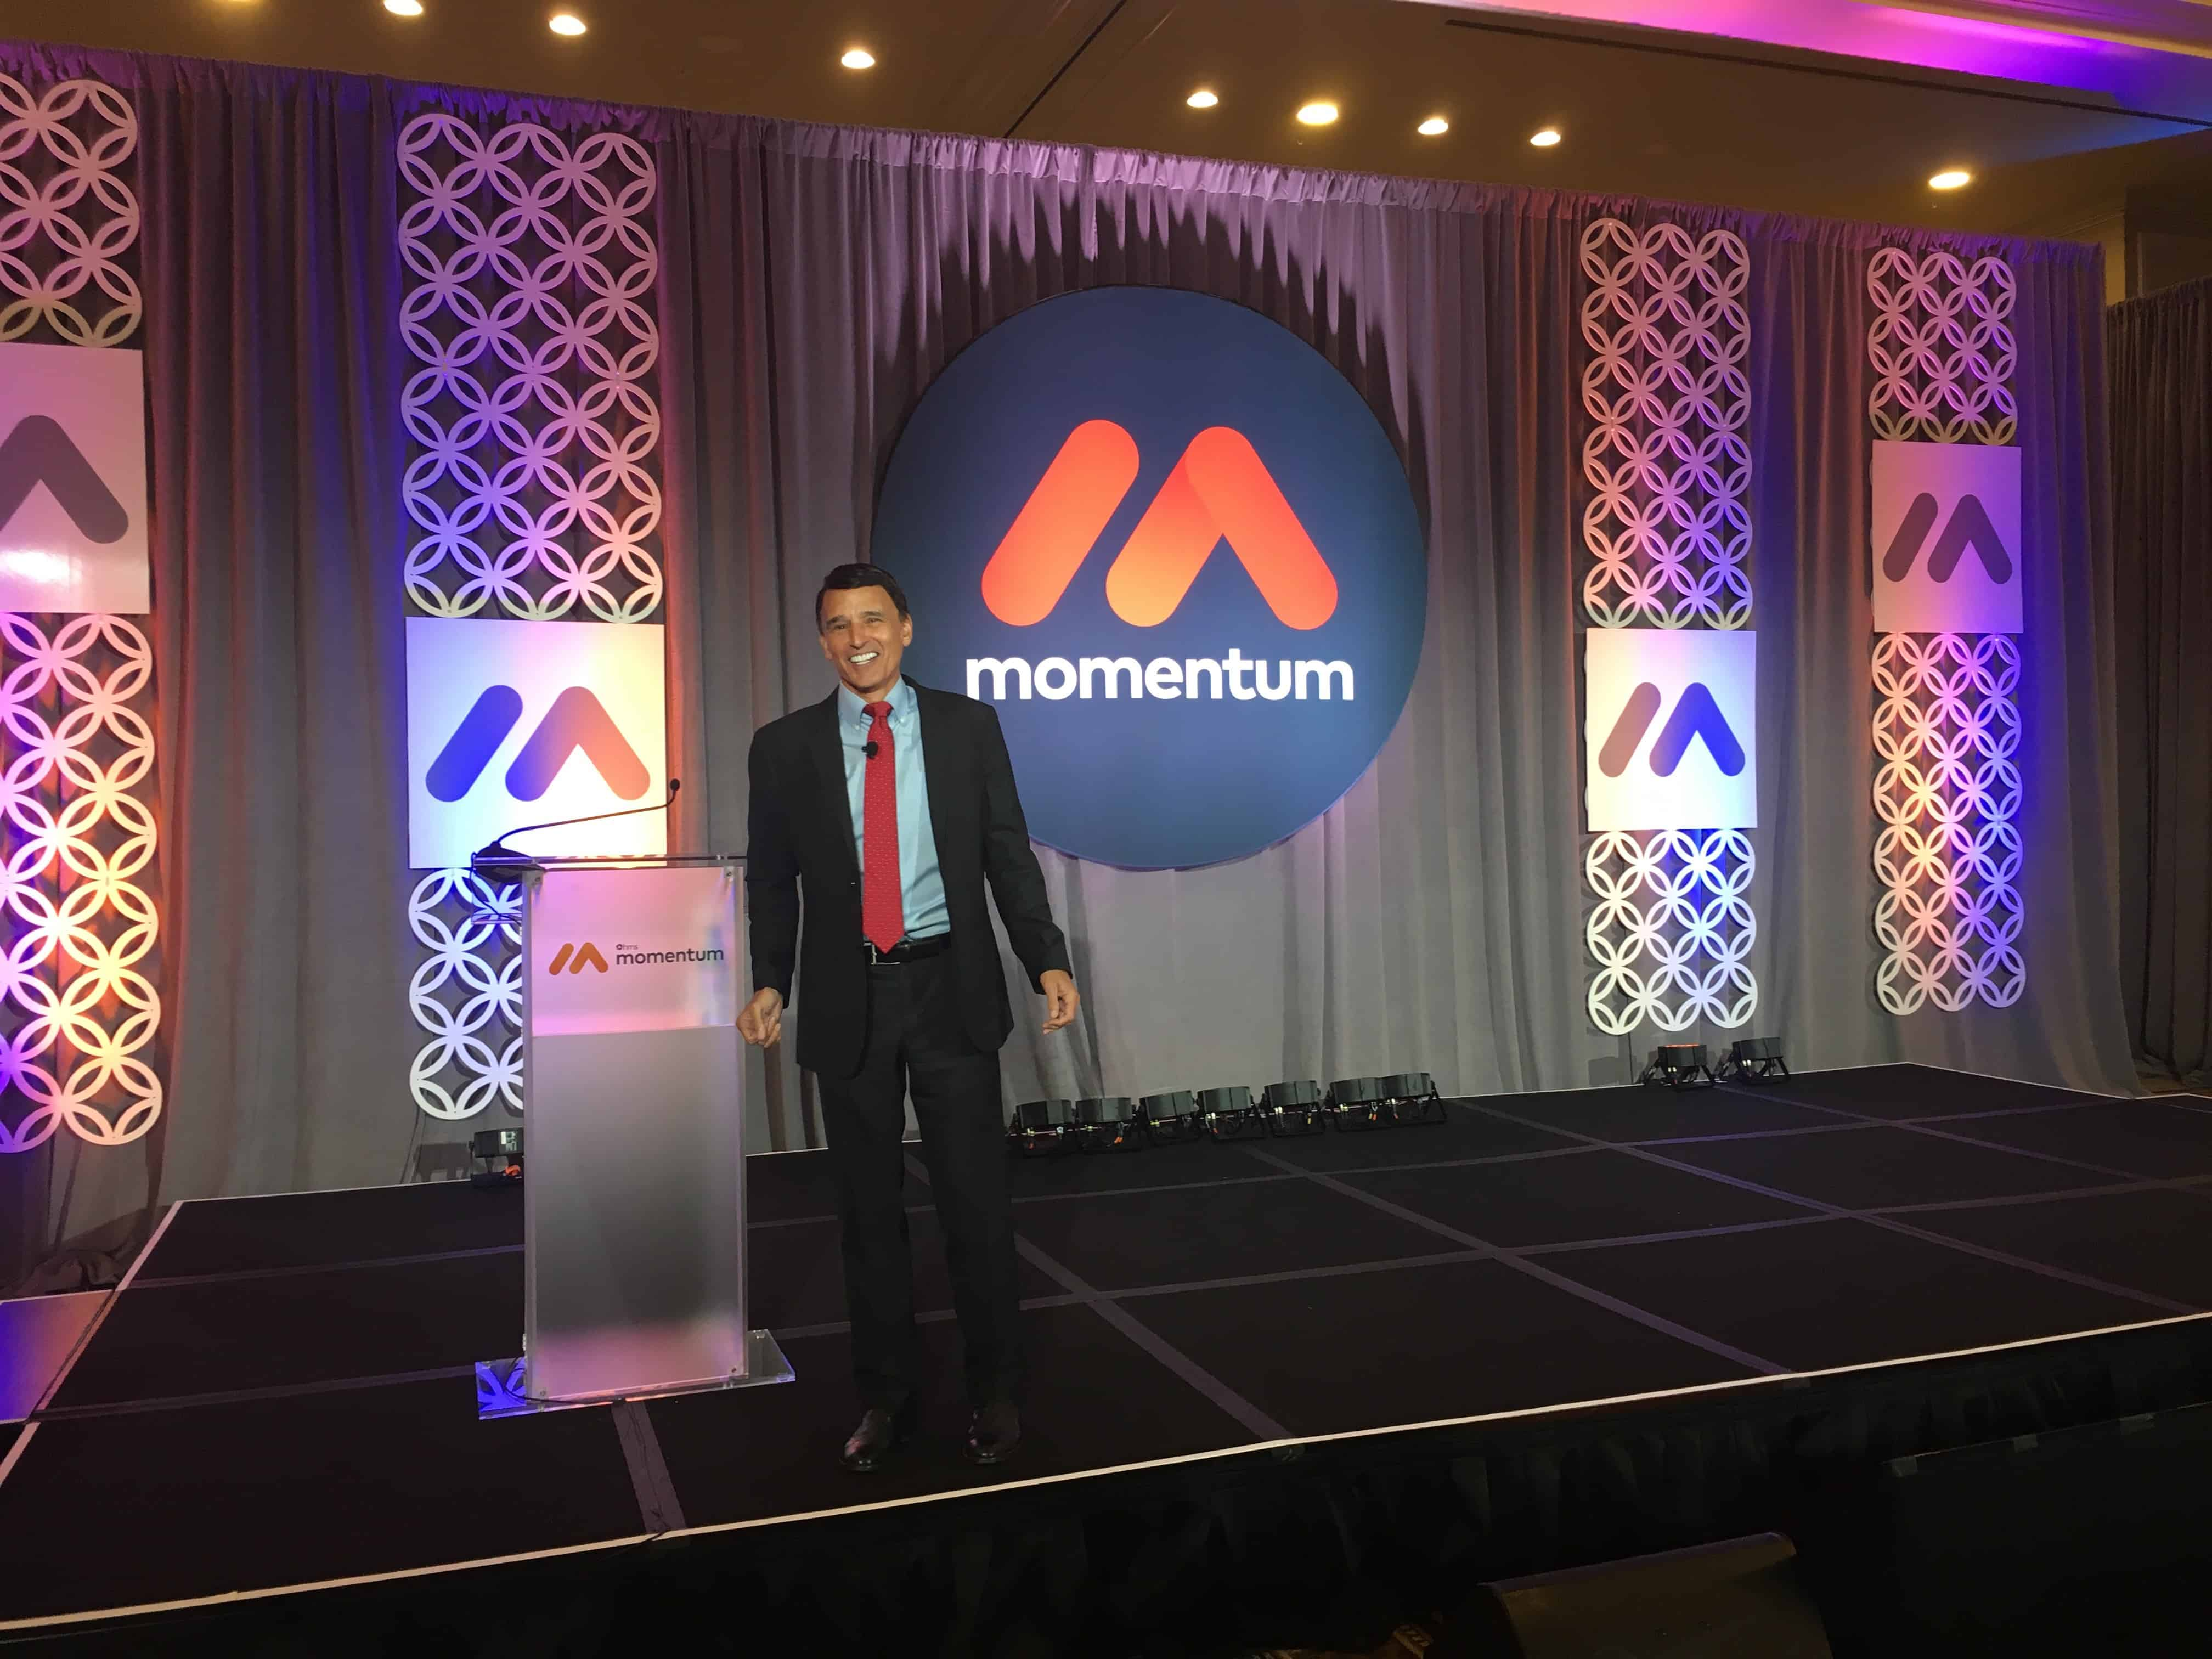 5 solutions for moving healthcare forward from the hms momentum 2018